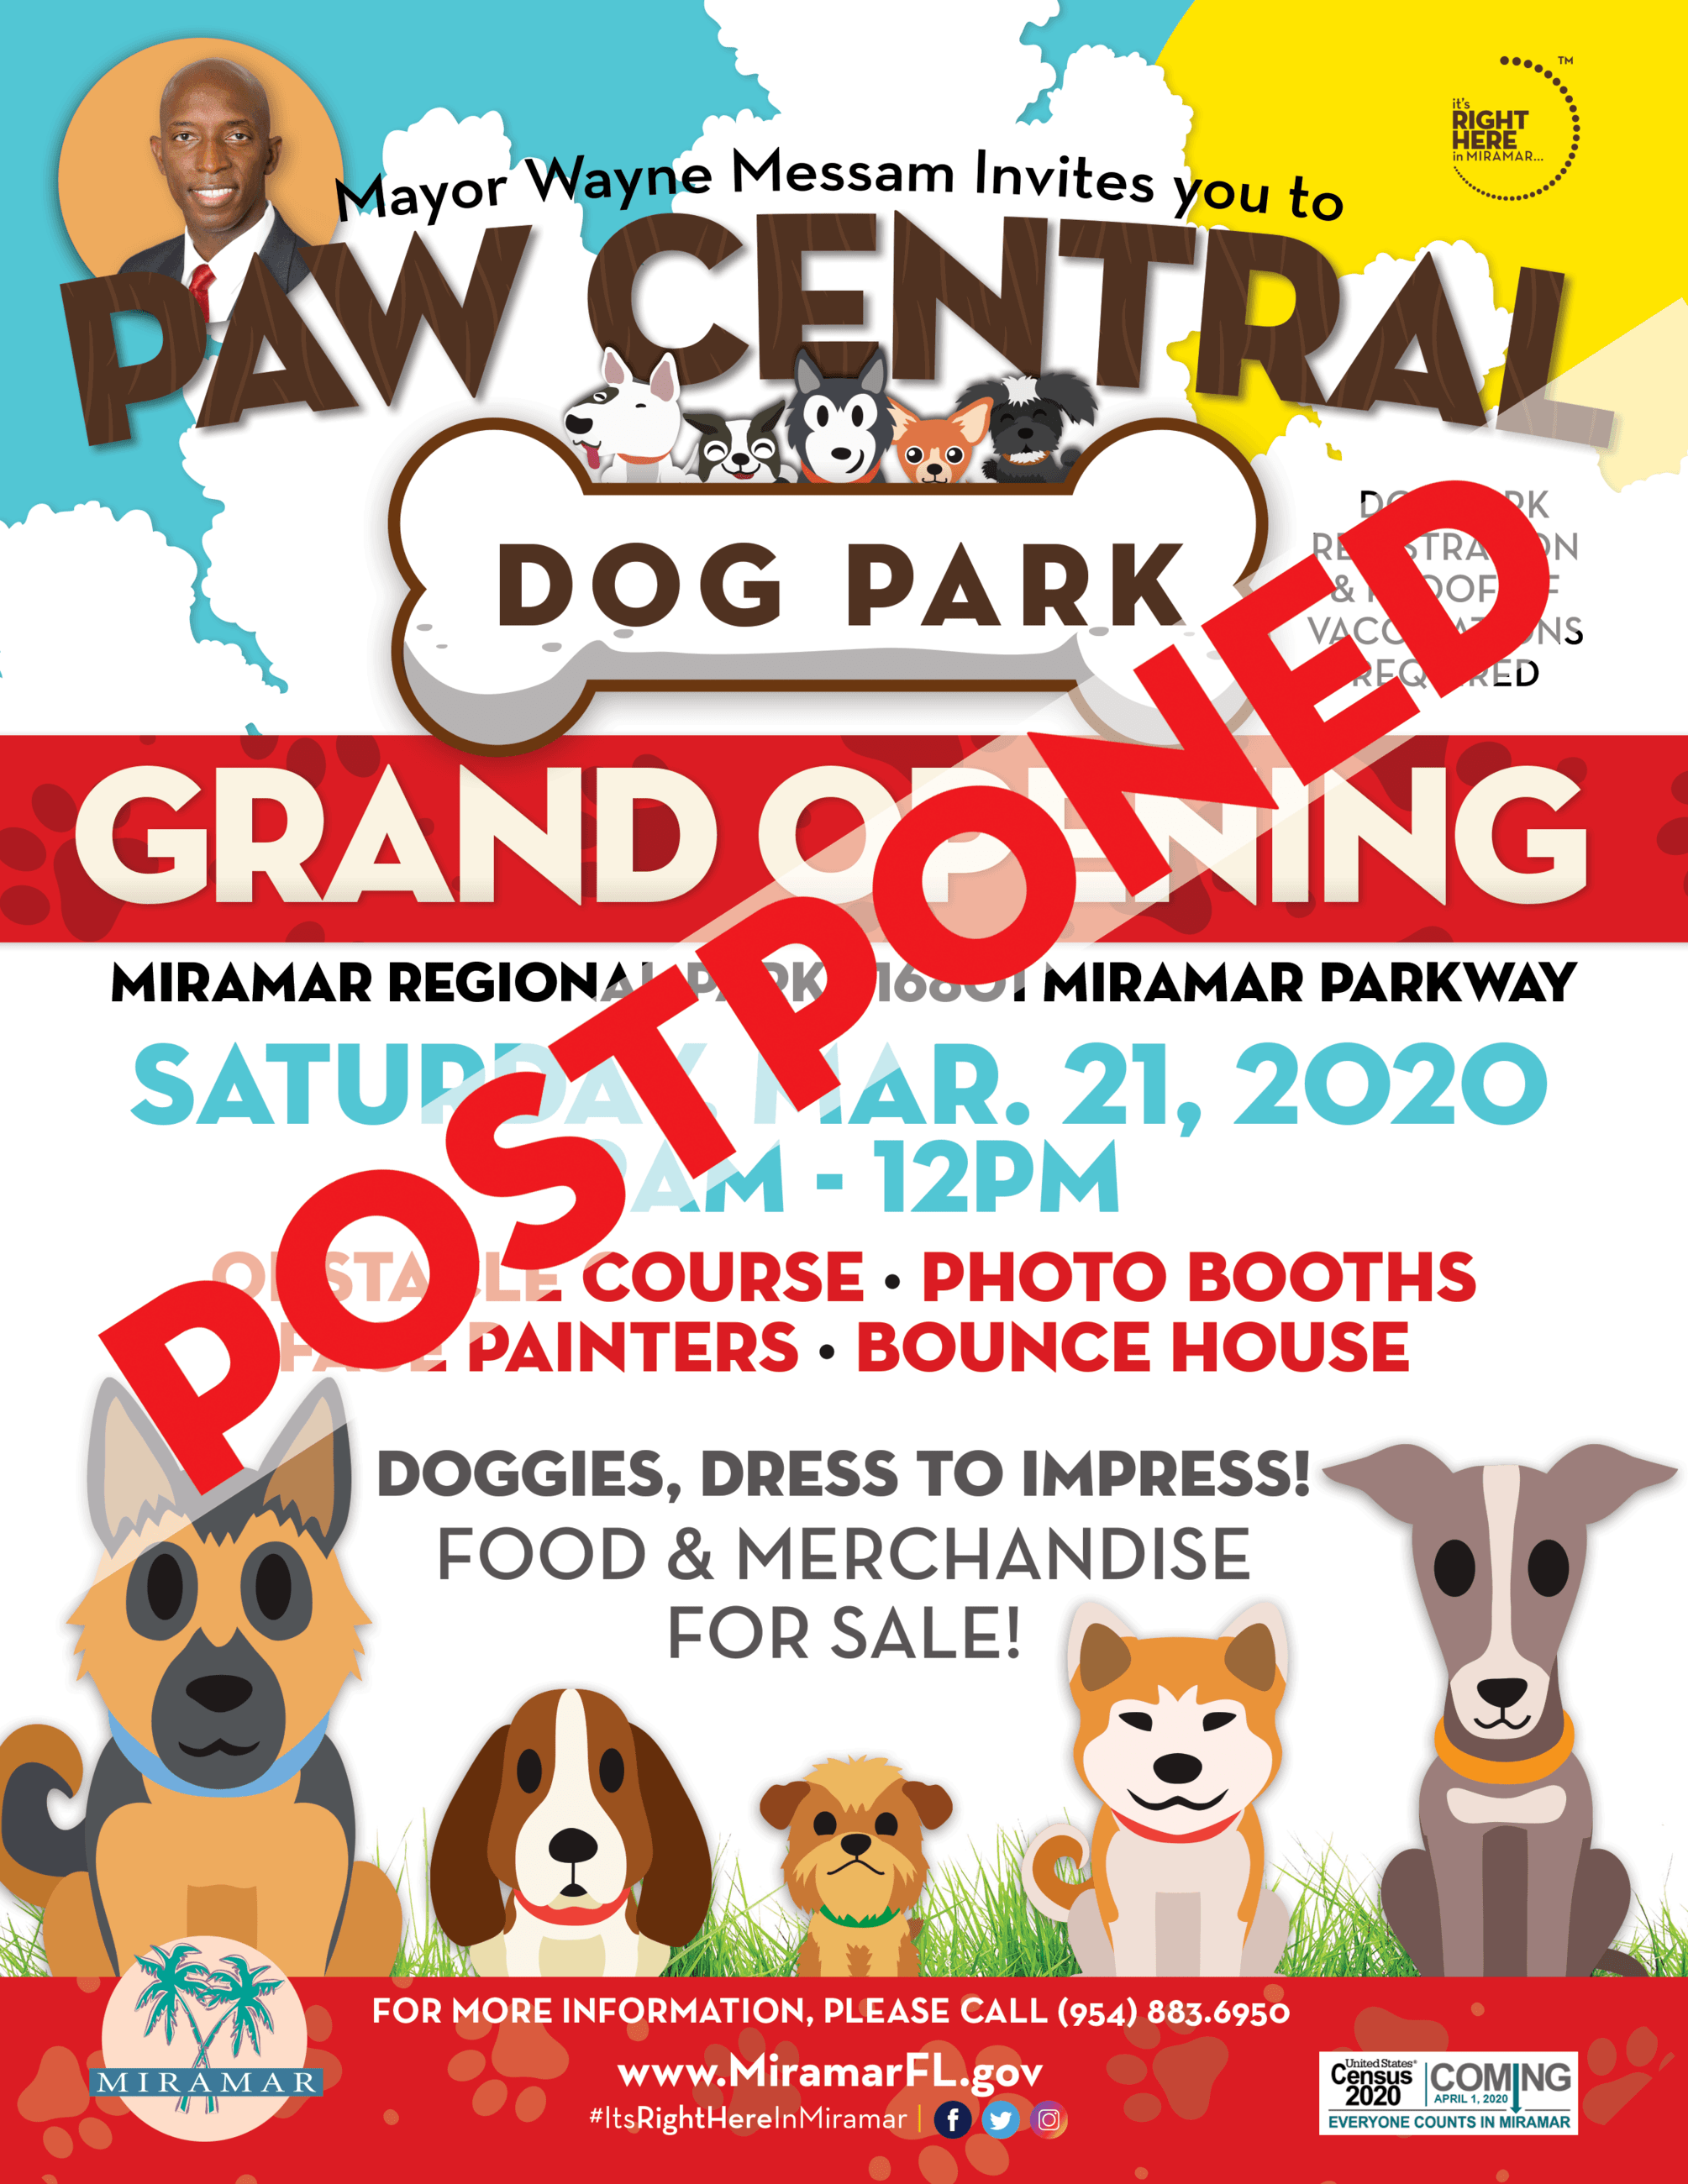 Paw Central Dog Park